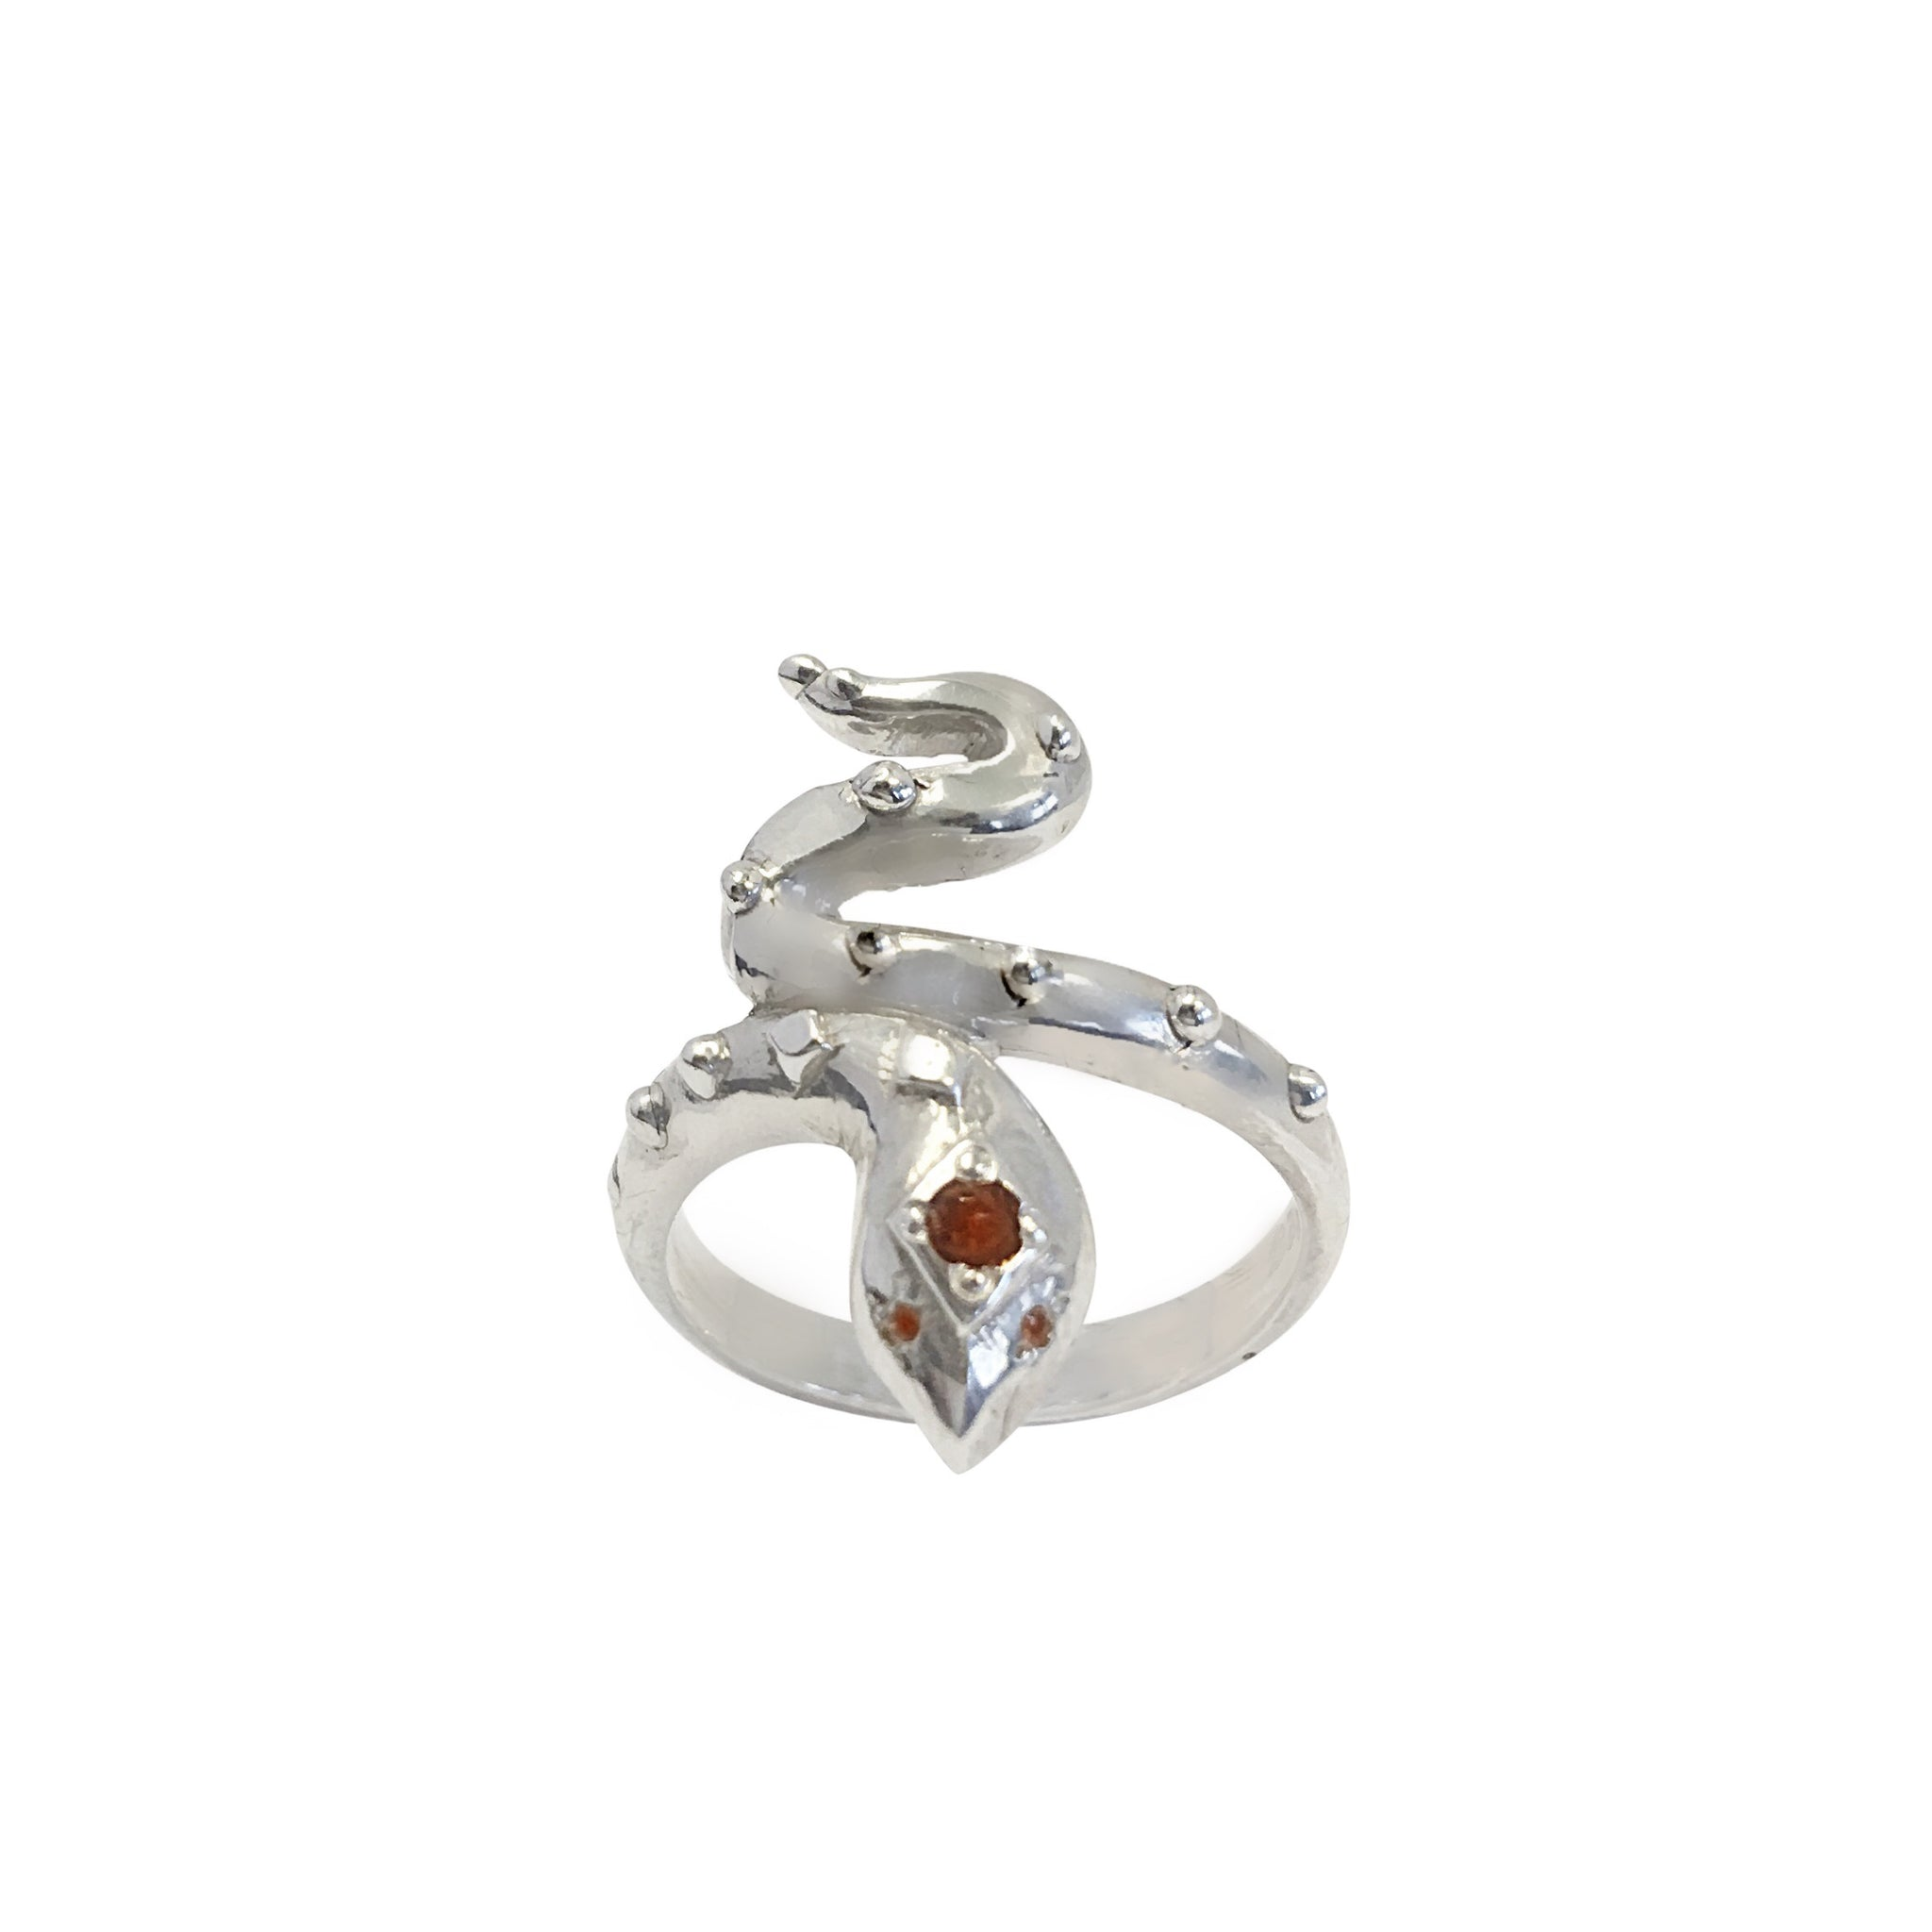 Courageous Serpent Ring